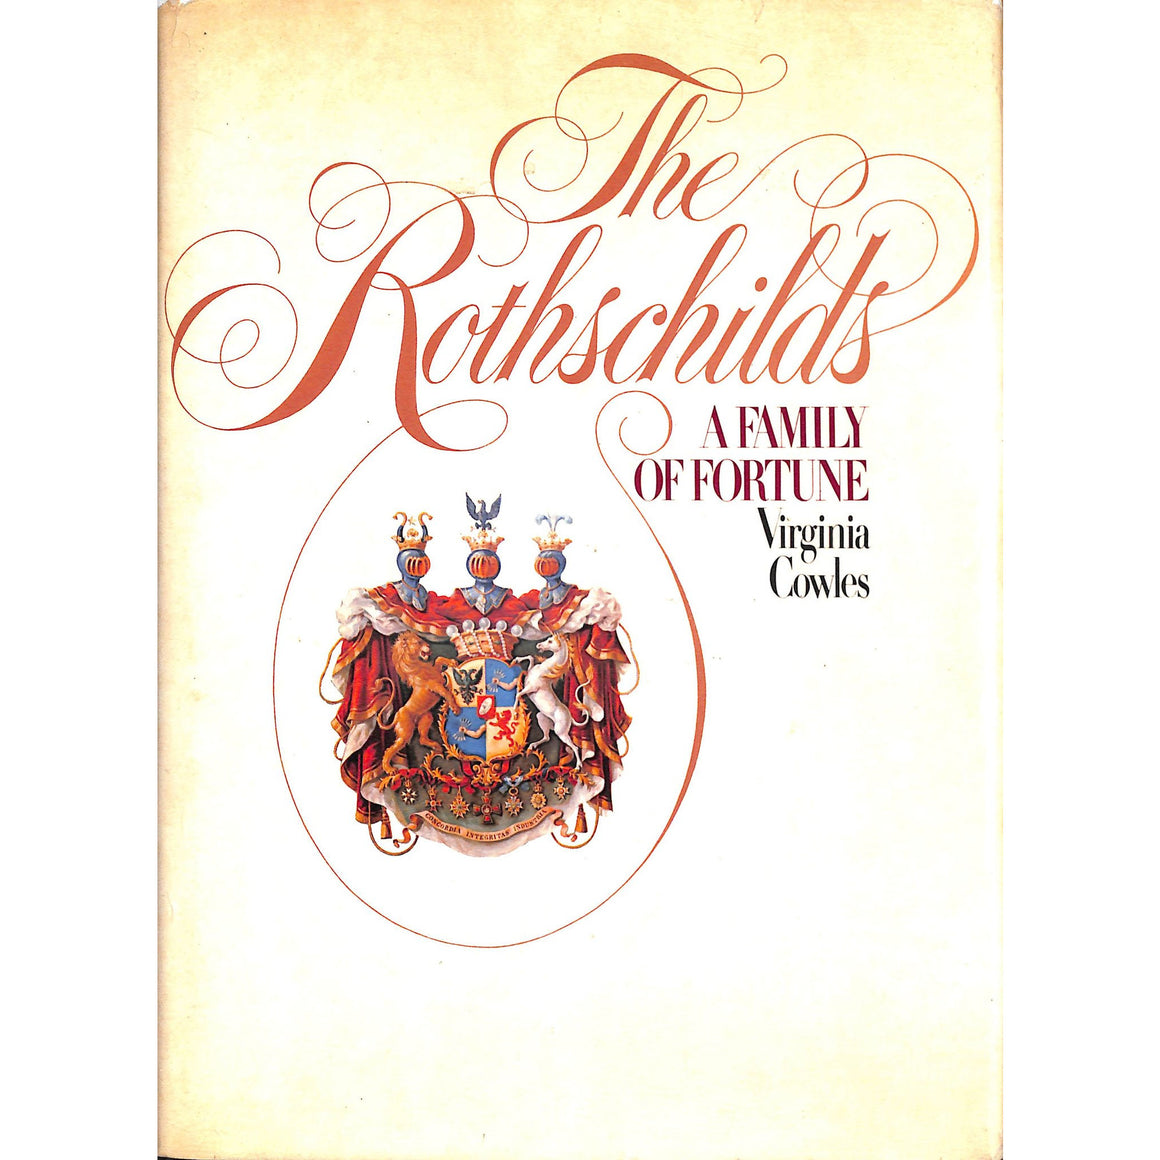 The Rothschilds: A Family of Fortune